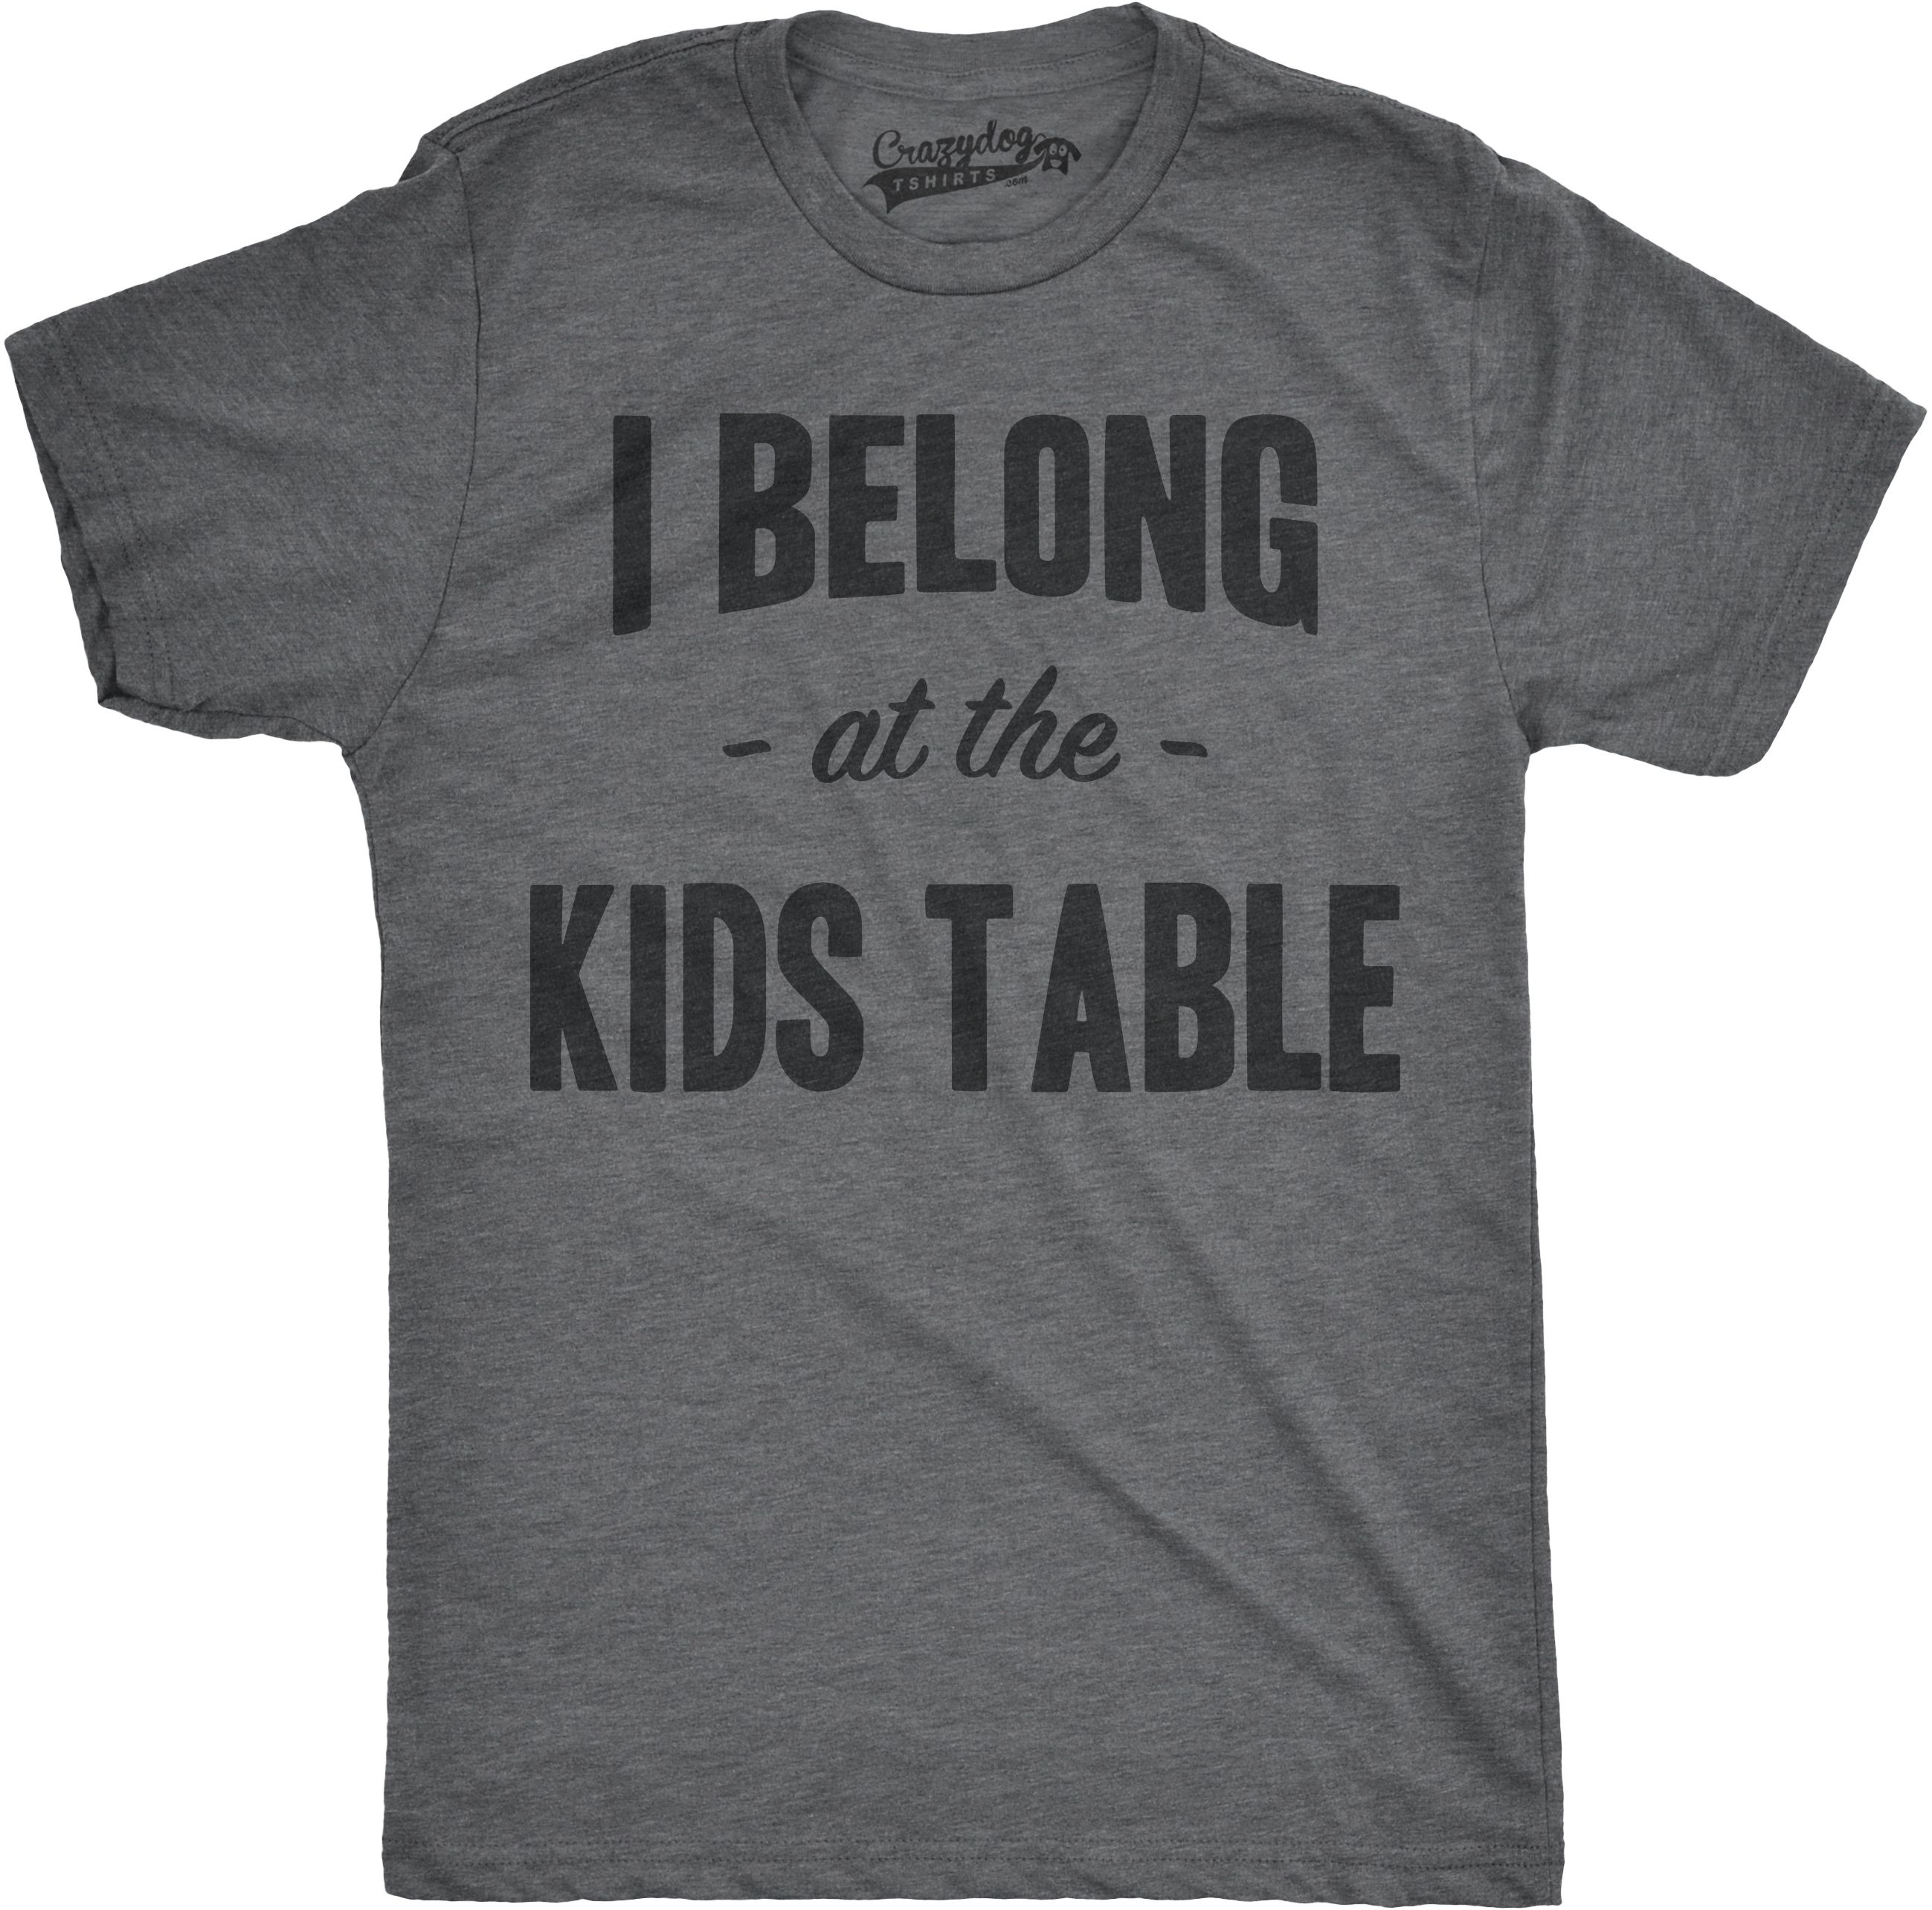 Mens I Belong at the Kids Table Funny Family Thanksgiving Dinner T shirt (Dark Heather Grey) - S Graphic Tees - Walmart.com